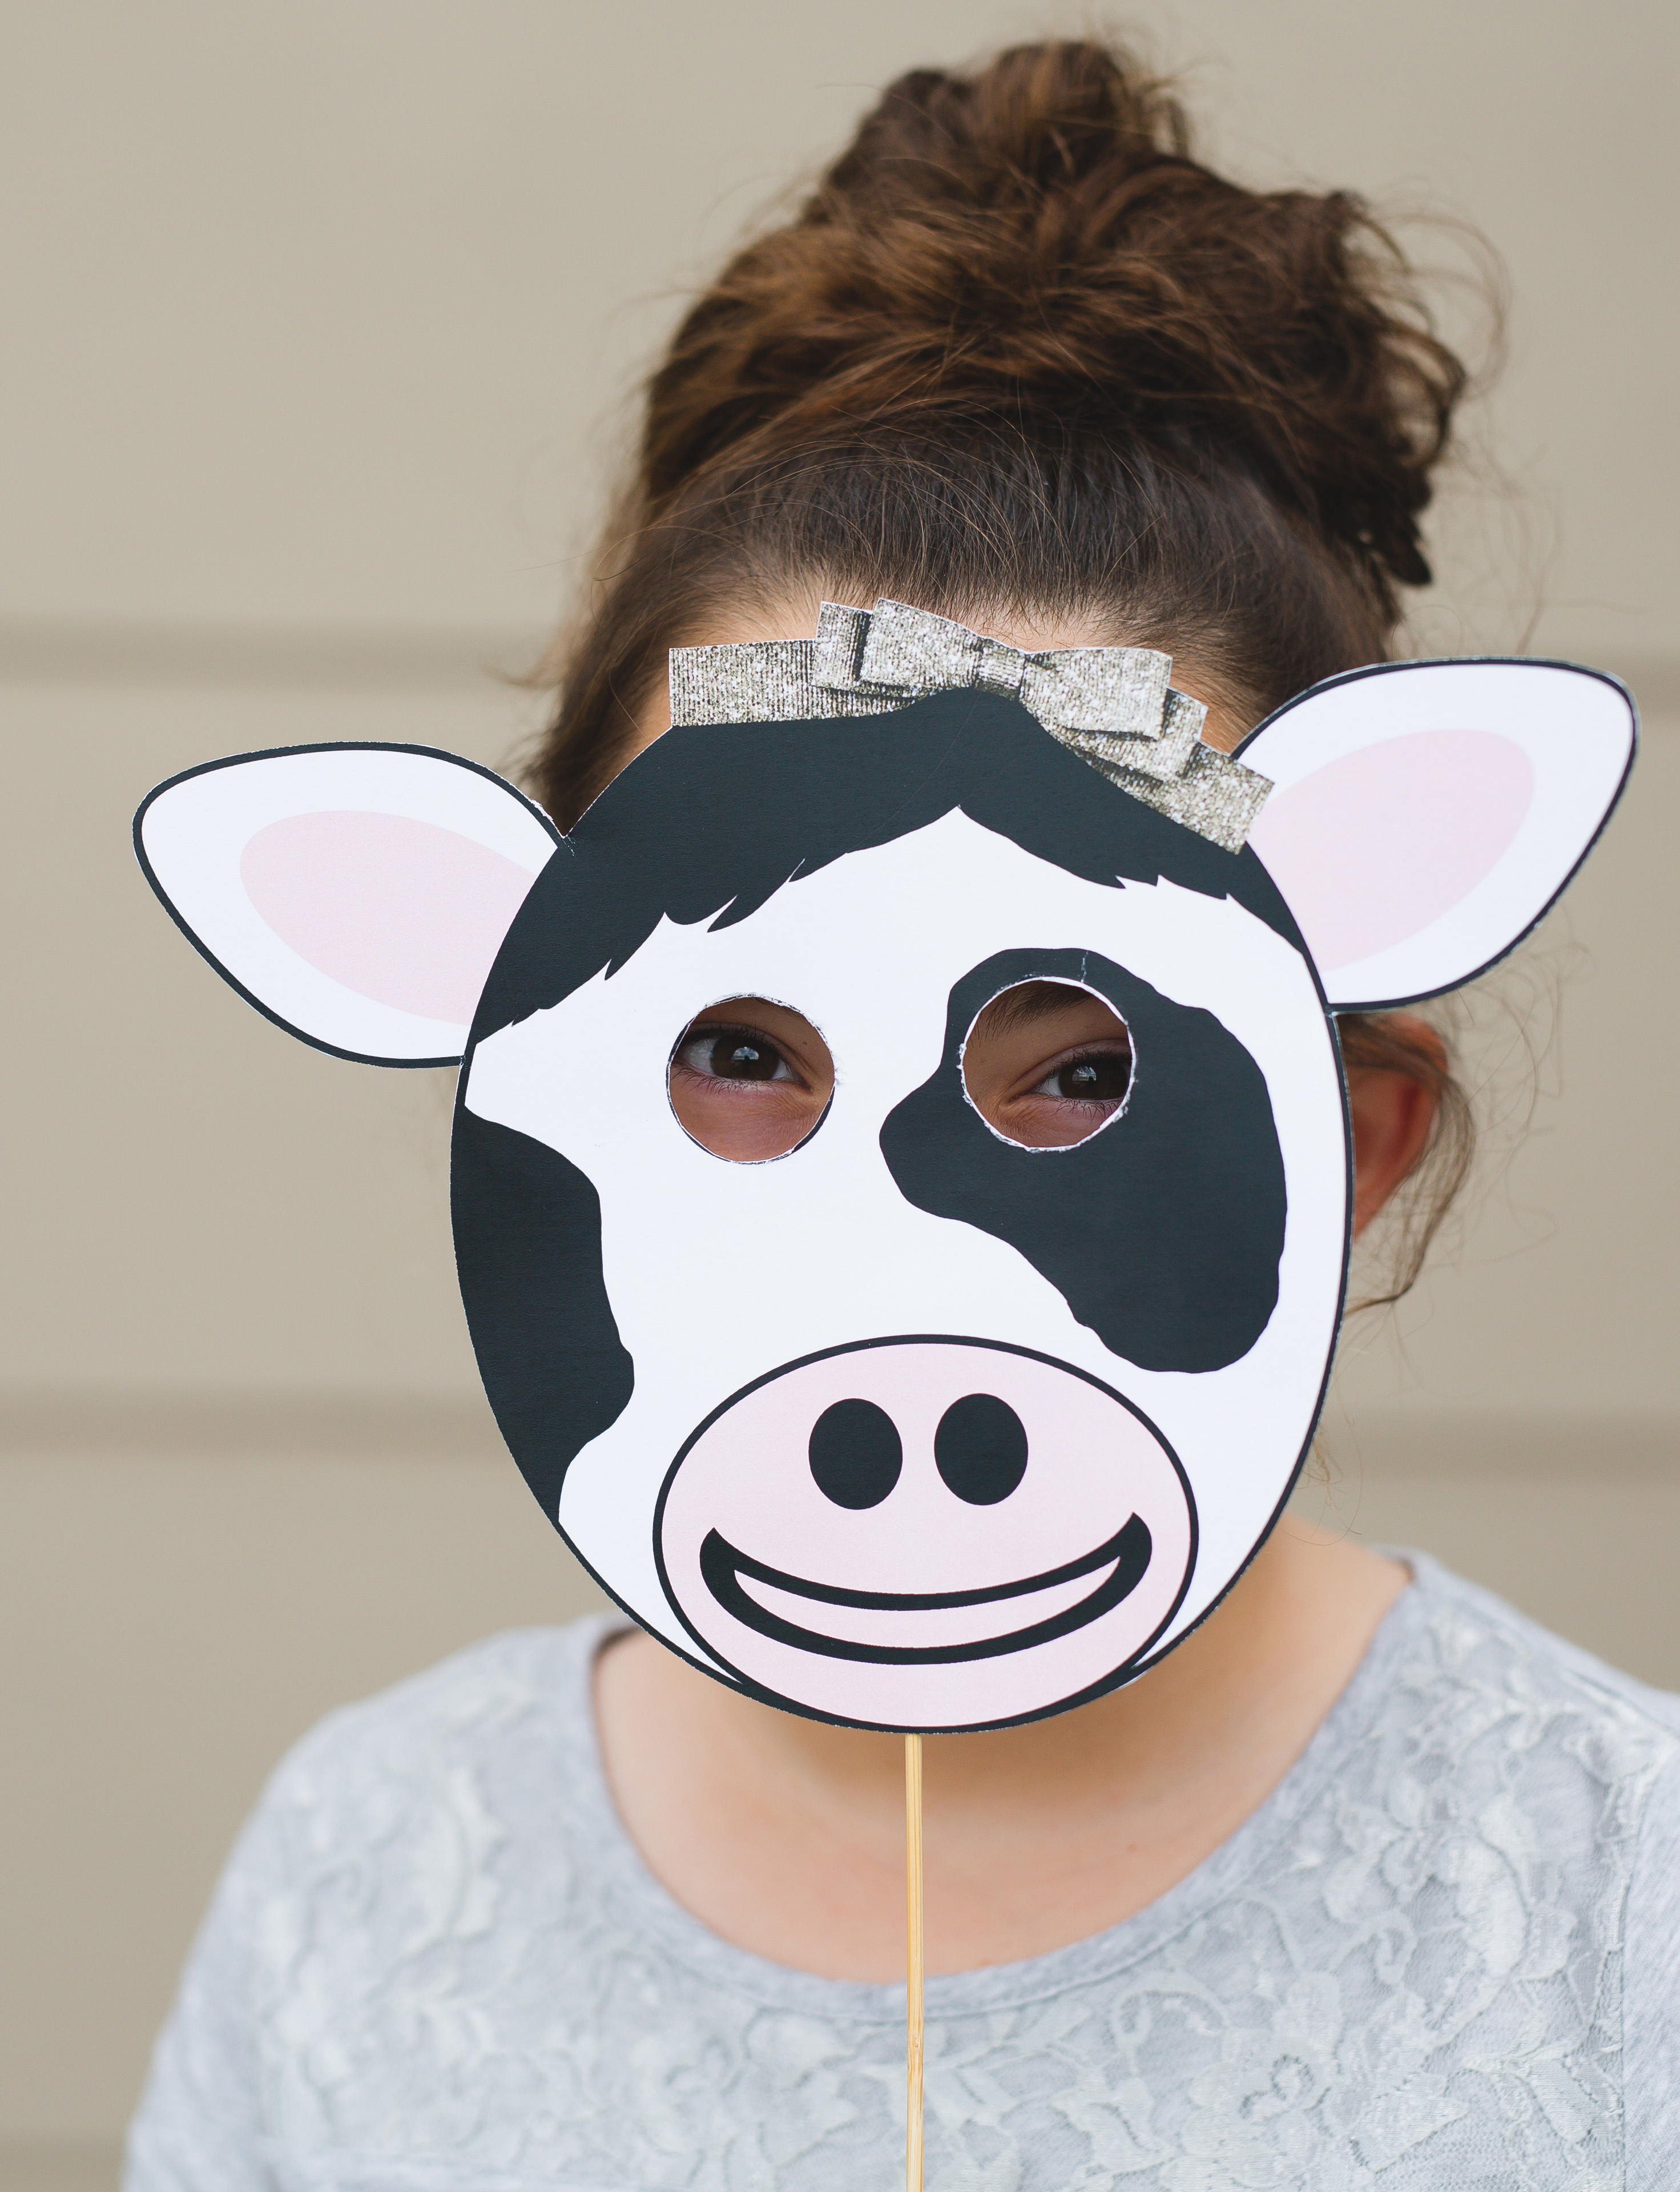 photograph regarding Cow Mask Printable referred to as Chick Fil A Cow Mask - 6 Good Sisters